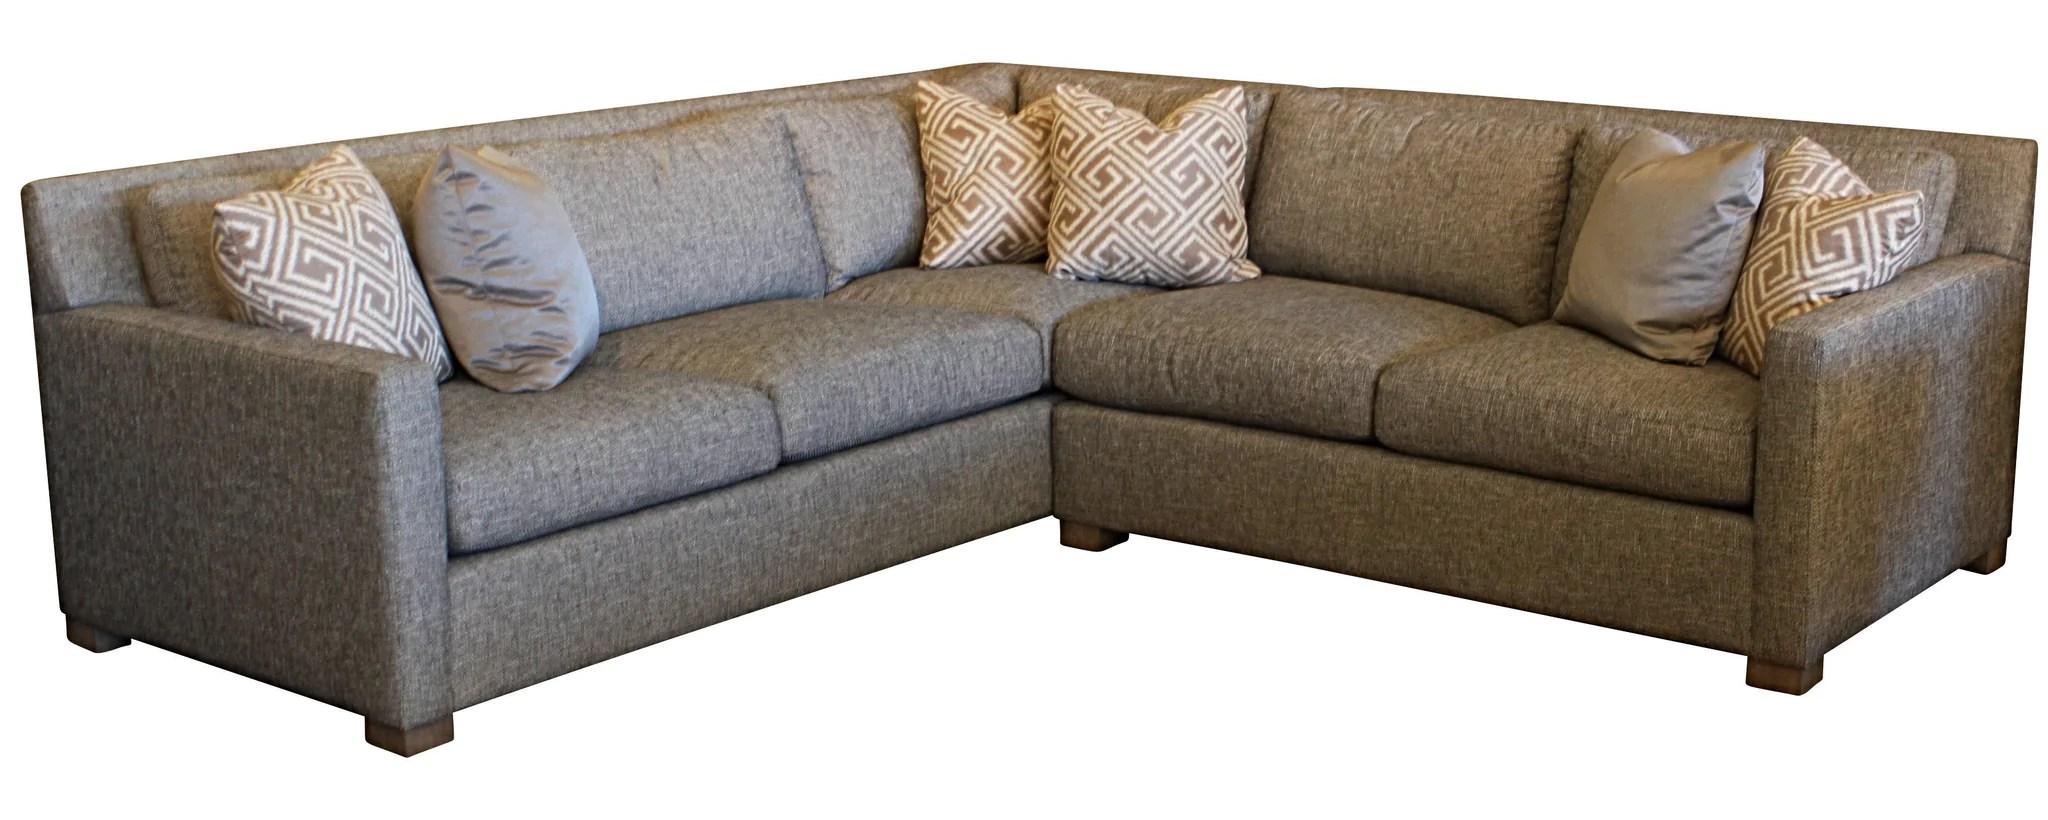 custom sofas seattle wa leather sectional queen sleeper sofa and sectionals  mortise tenon